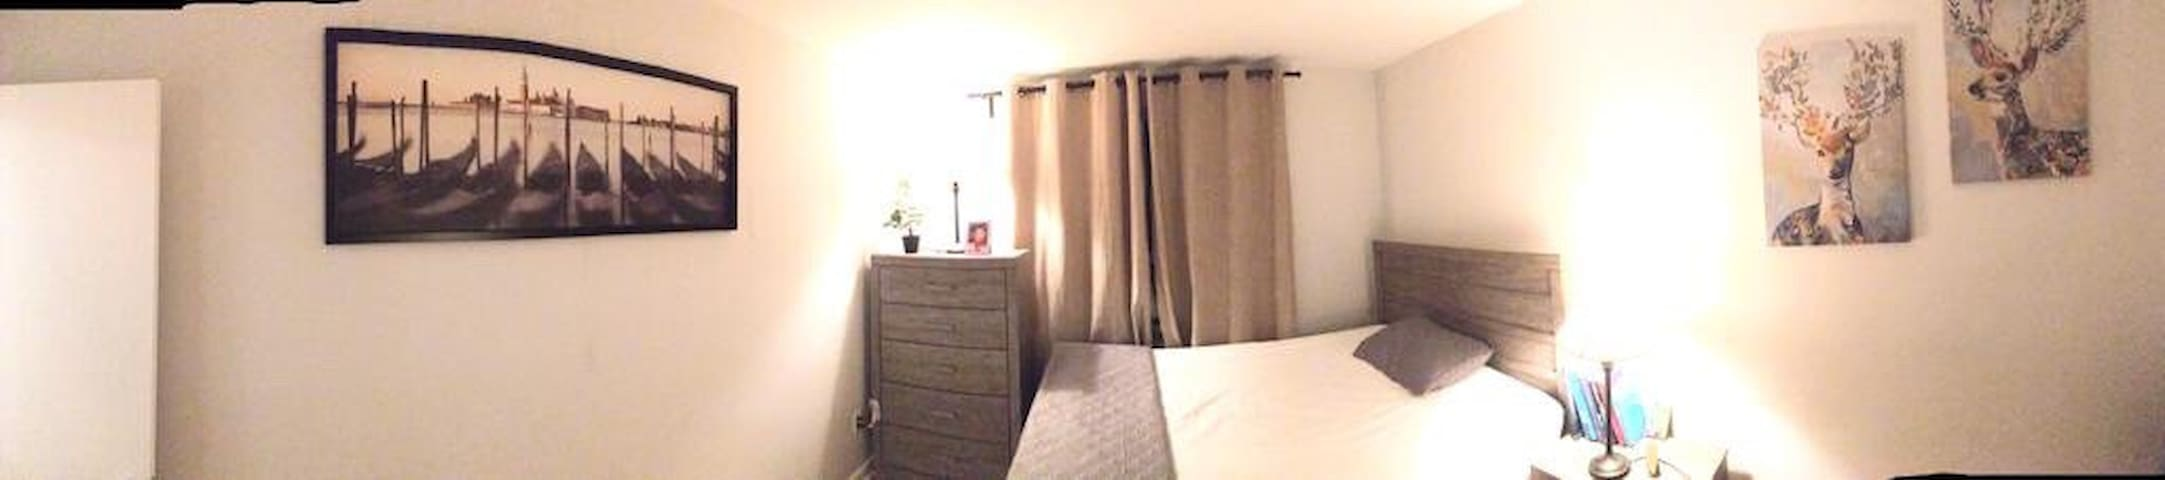 Nice and clean room in a nice and clean apartment